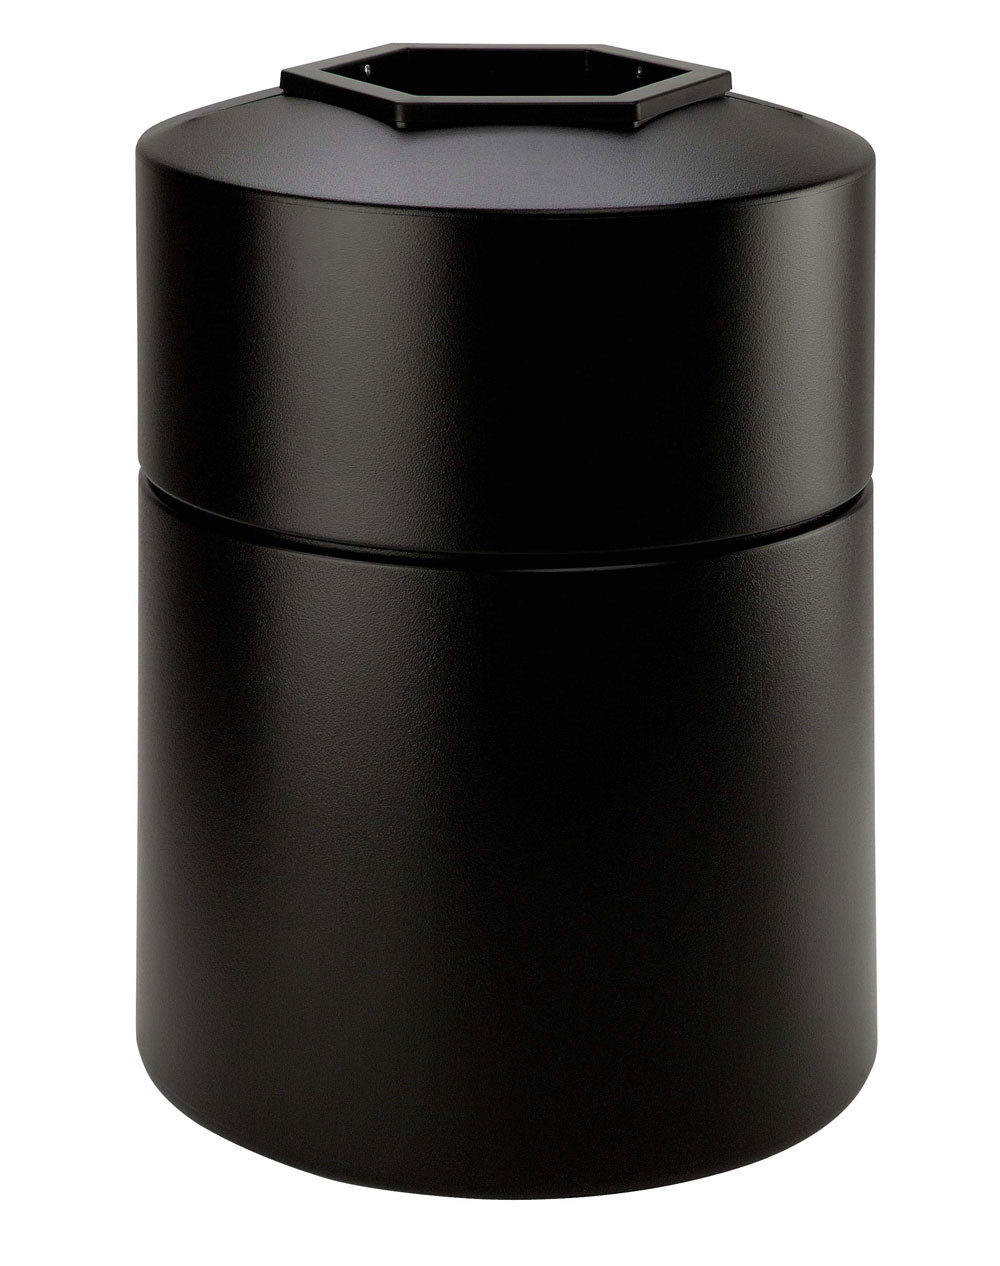 45-Gal Round Plastic Waste Container - 30H x 22D